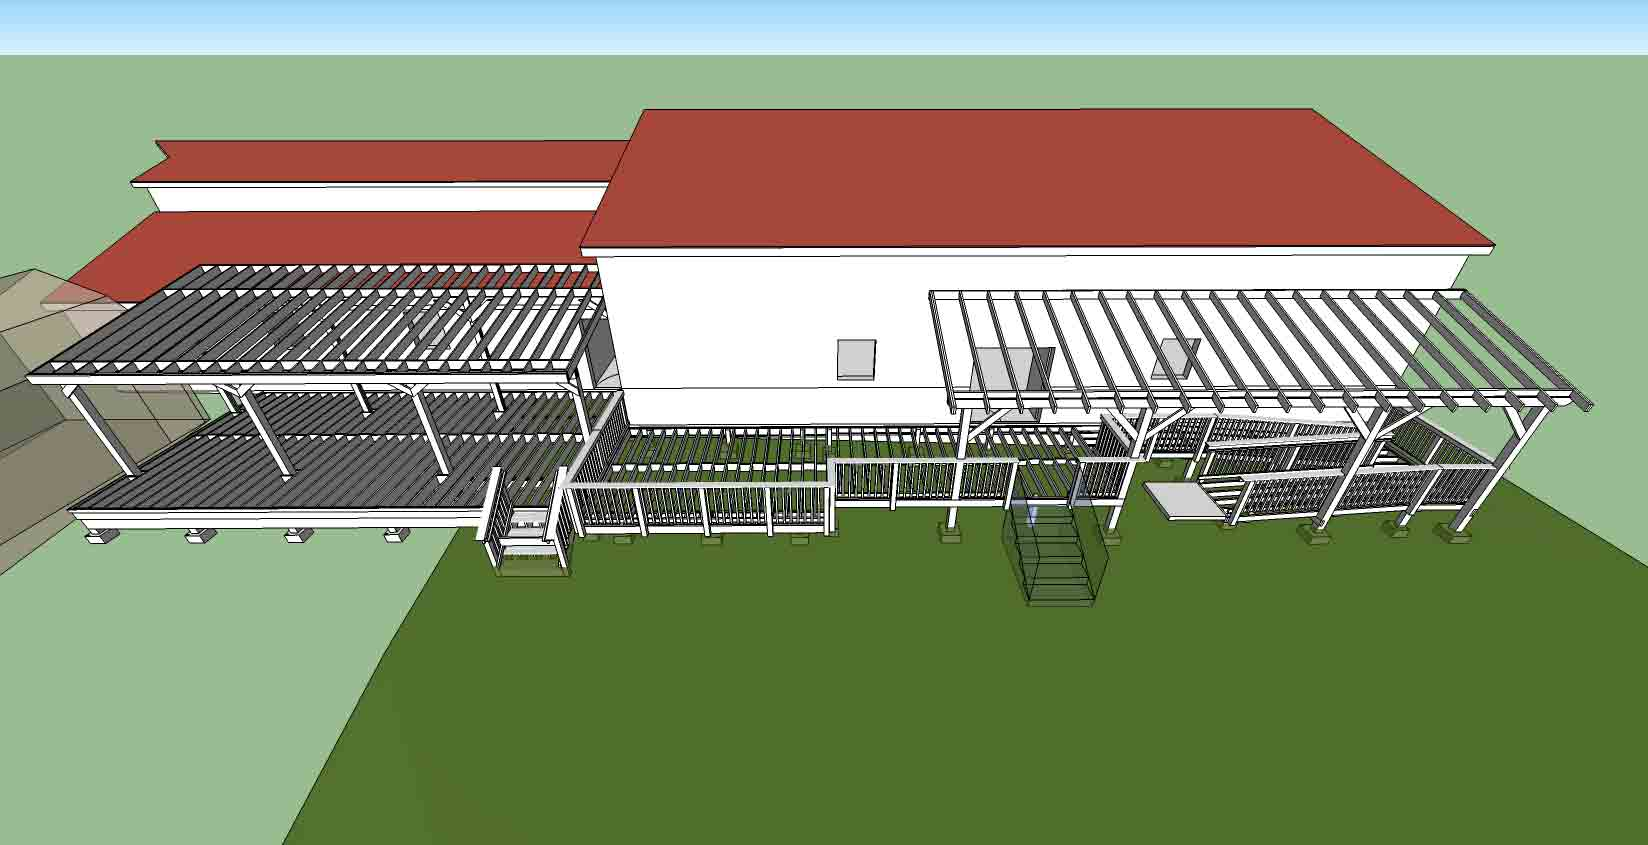 Loading Dock and Deck rendering